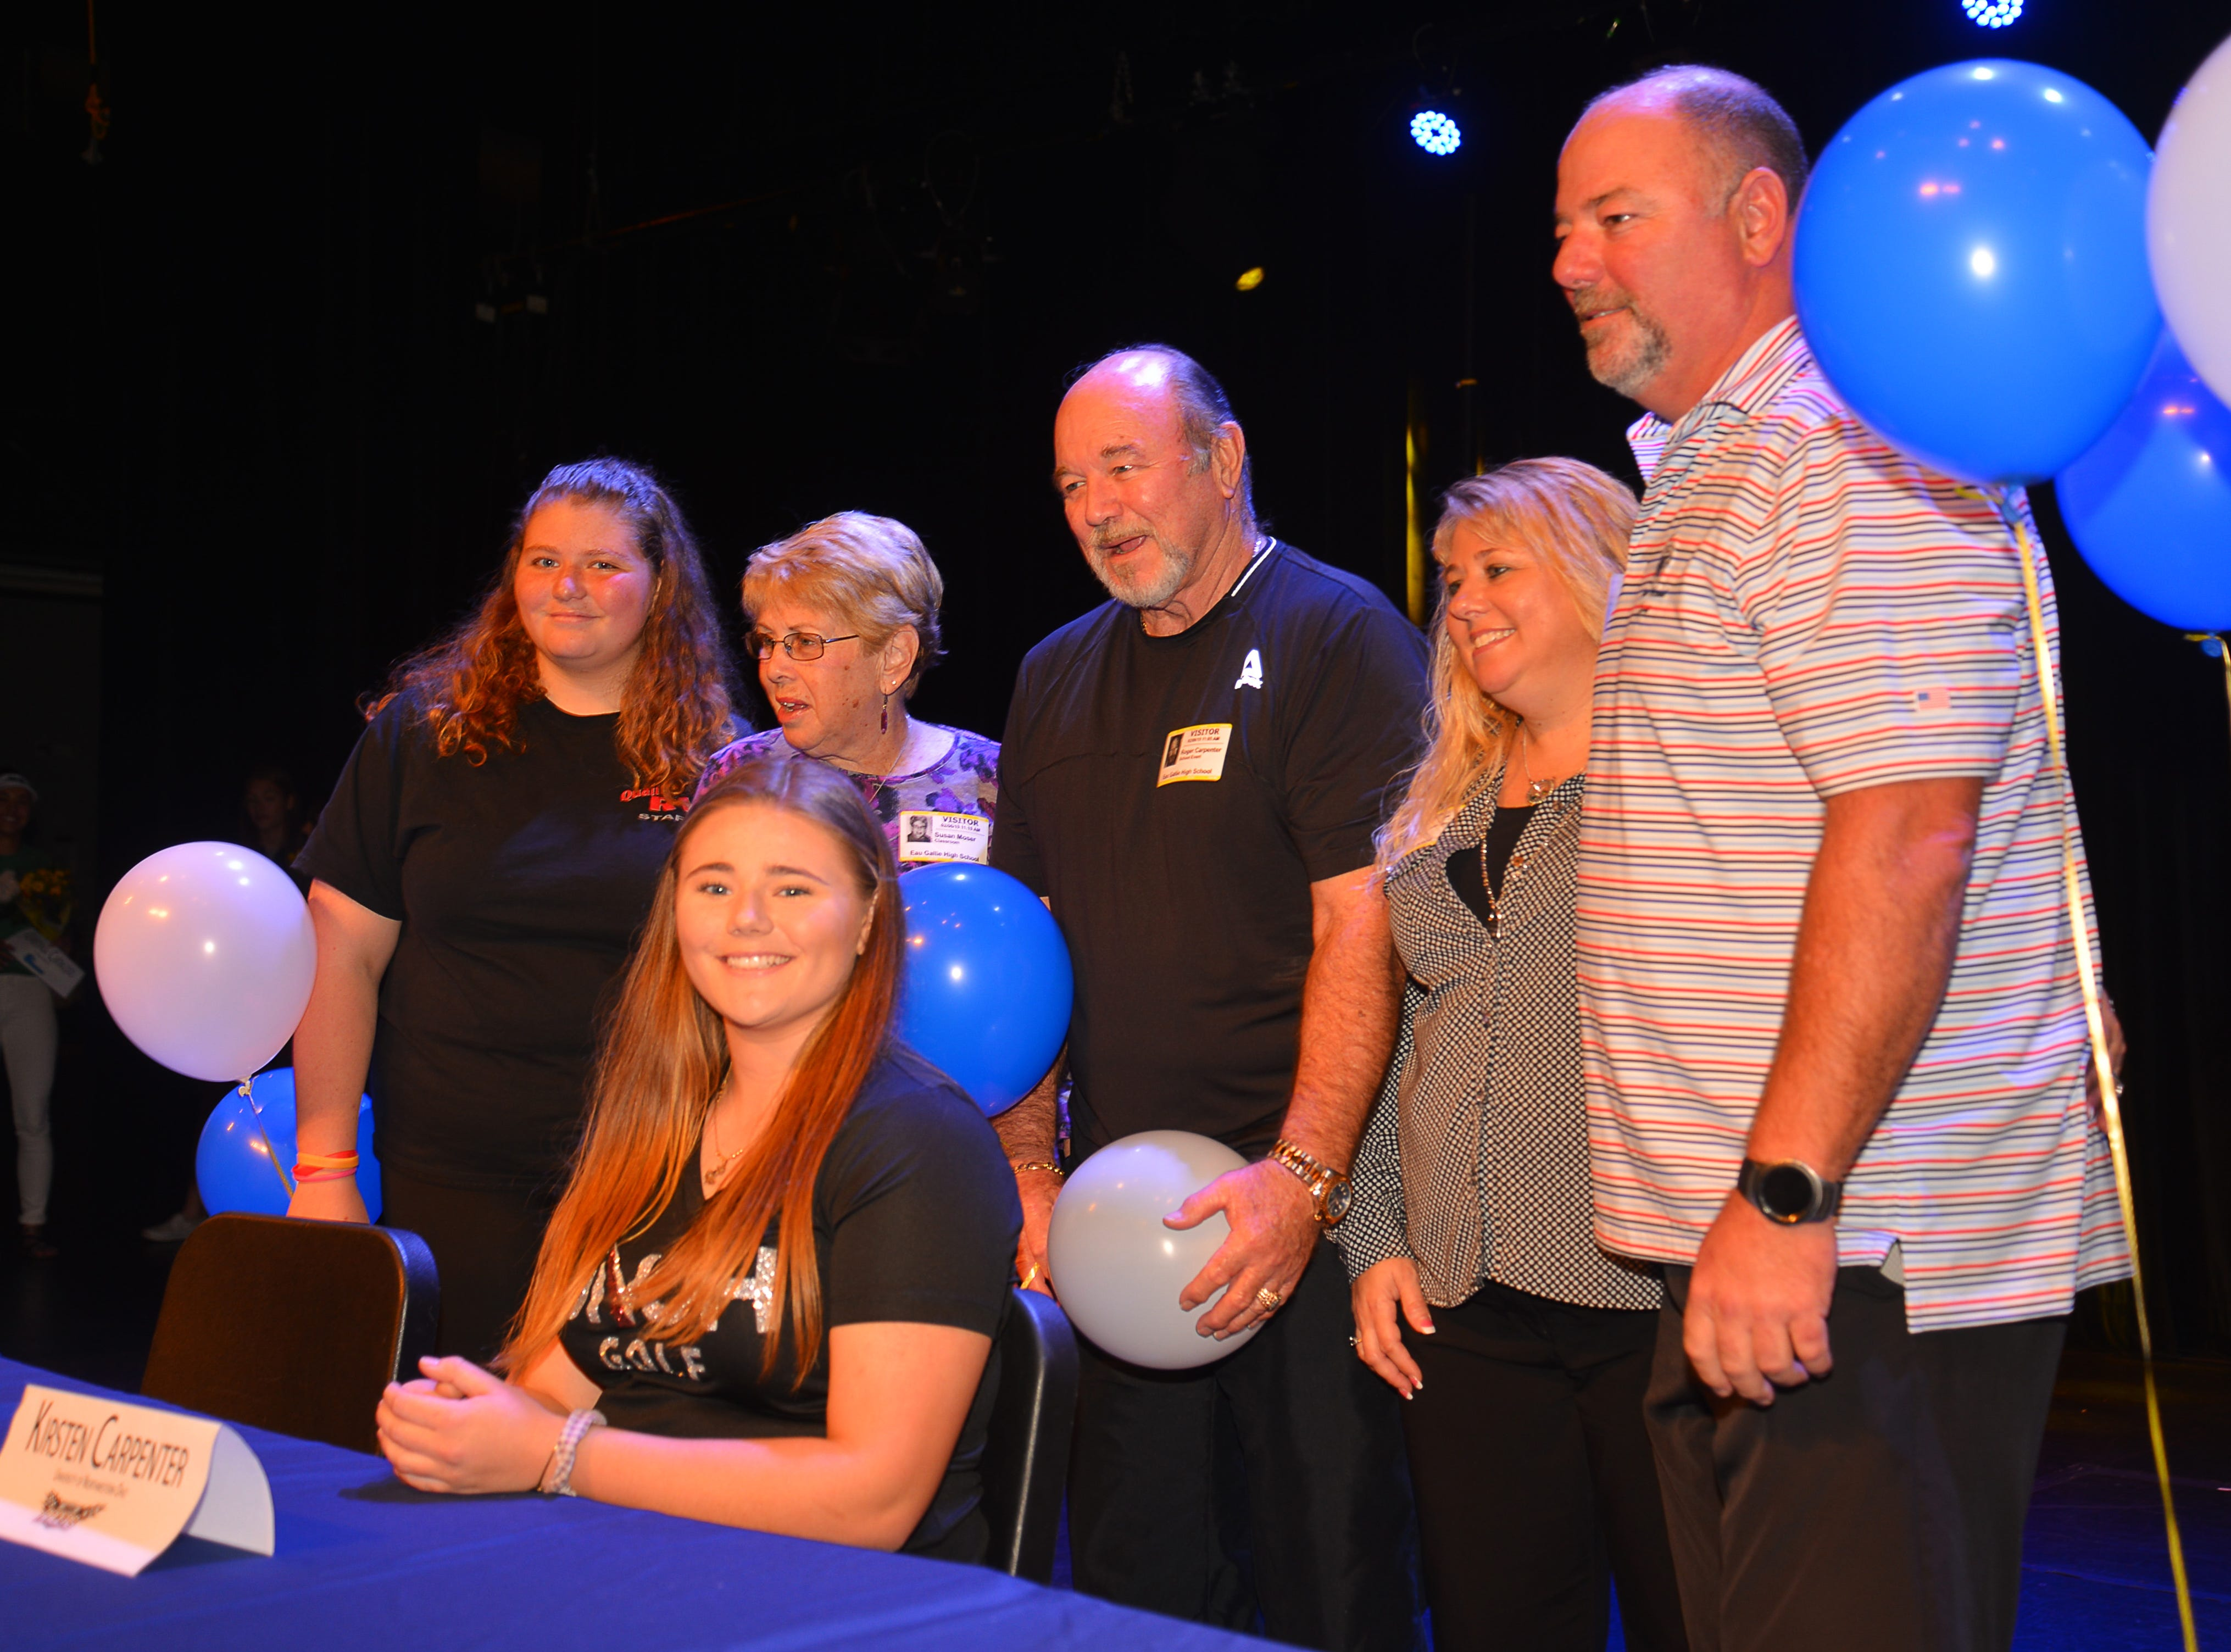 Eau Gallie High School had 11 athletes sign letters of intent on Wednesday. Kristen Carpenter poses with her family.